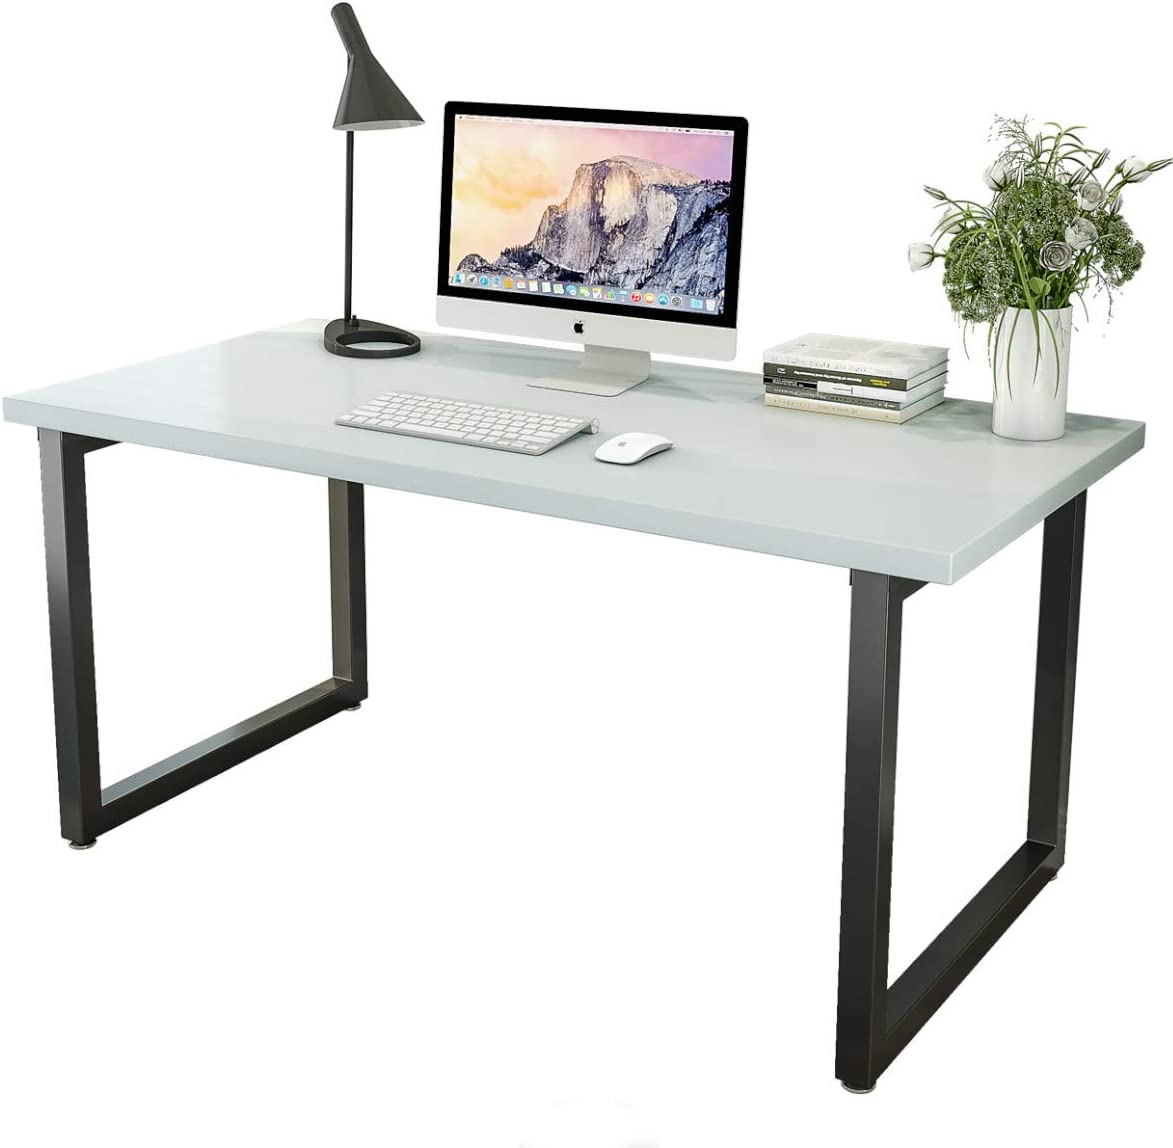 Patavinity Real Wood Computer Desk, 47in Rustic Wood and Metal Writing Desk, Sturdy PC Study Table for Home Office (47'' W x 23'' D x 29'', Pine Wood Desktop with Water-Proof PVC Cover, White)